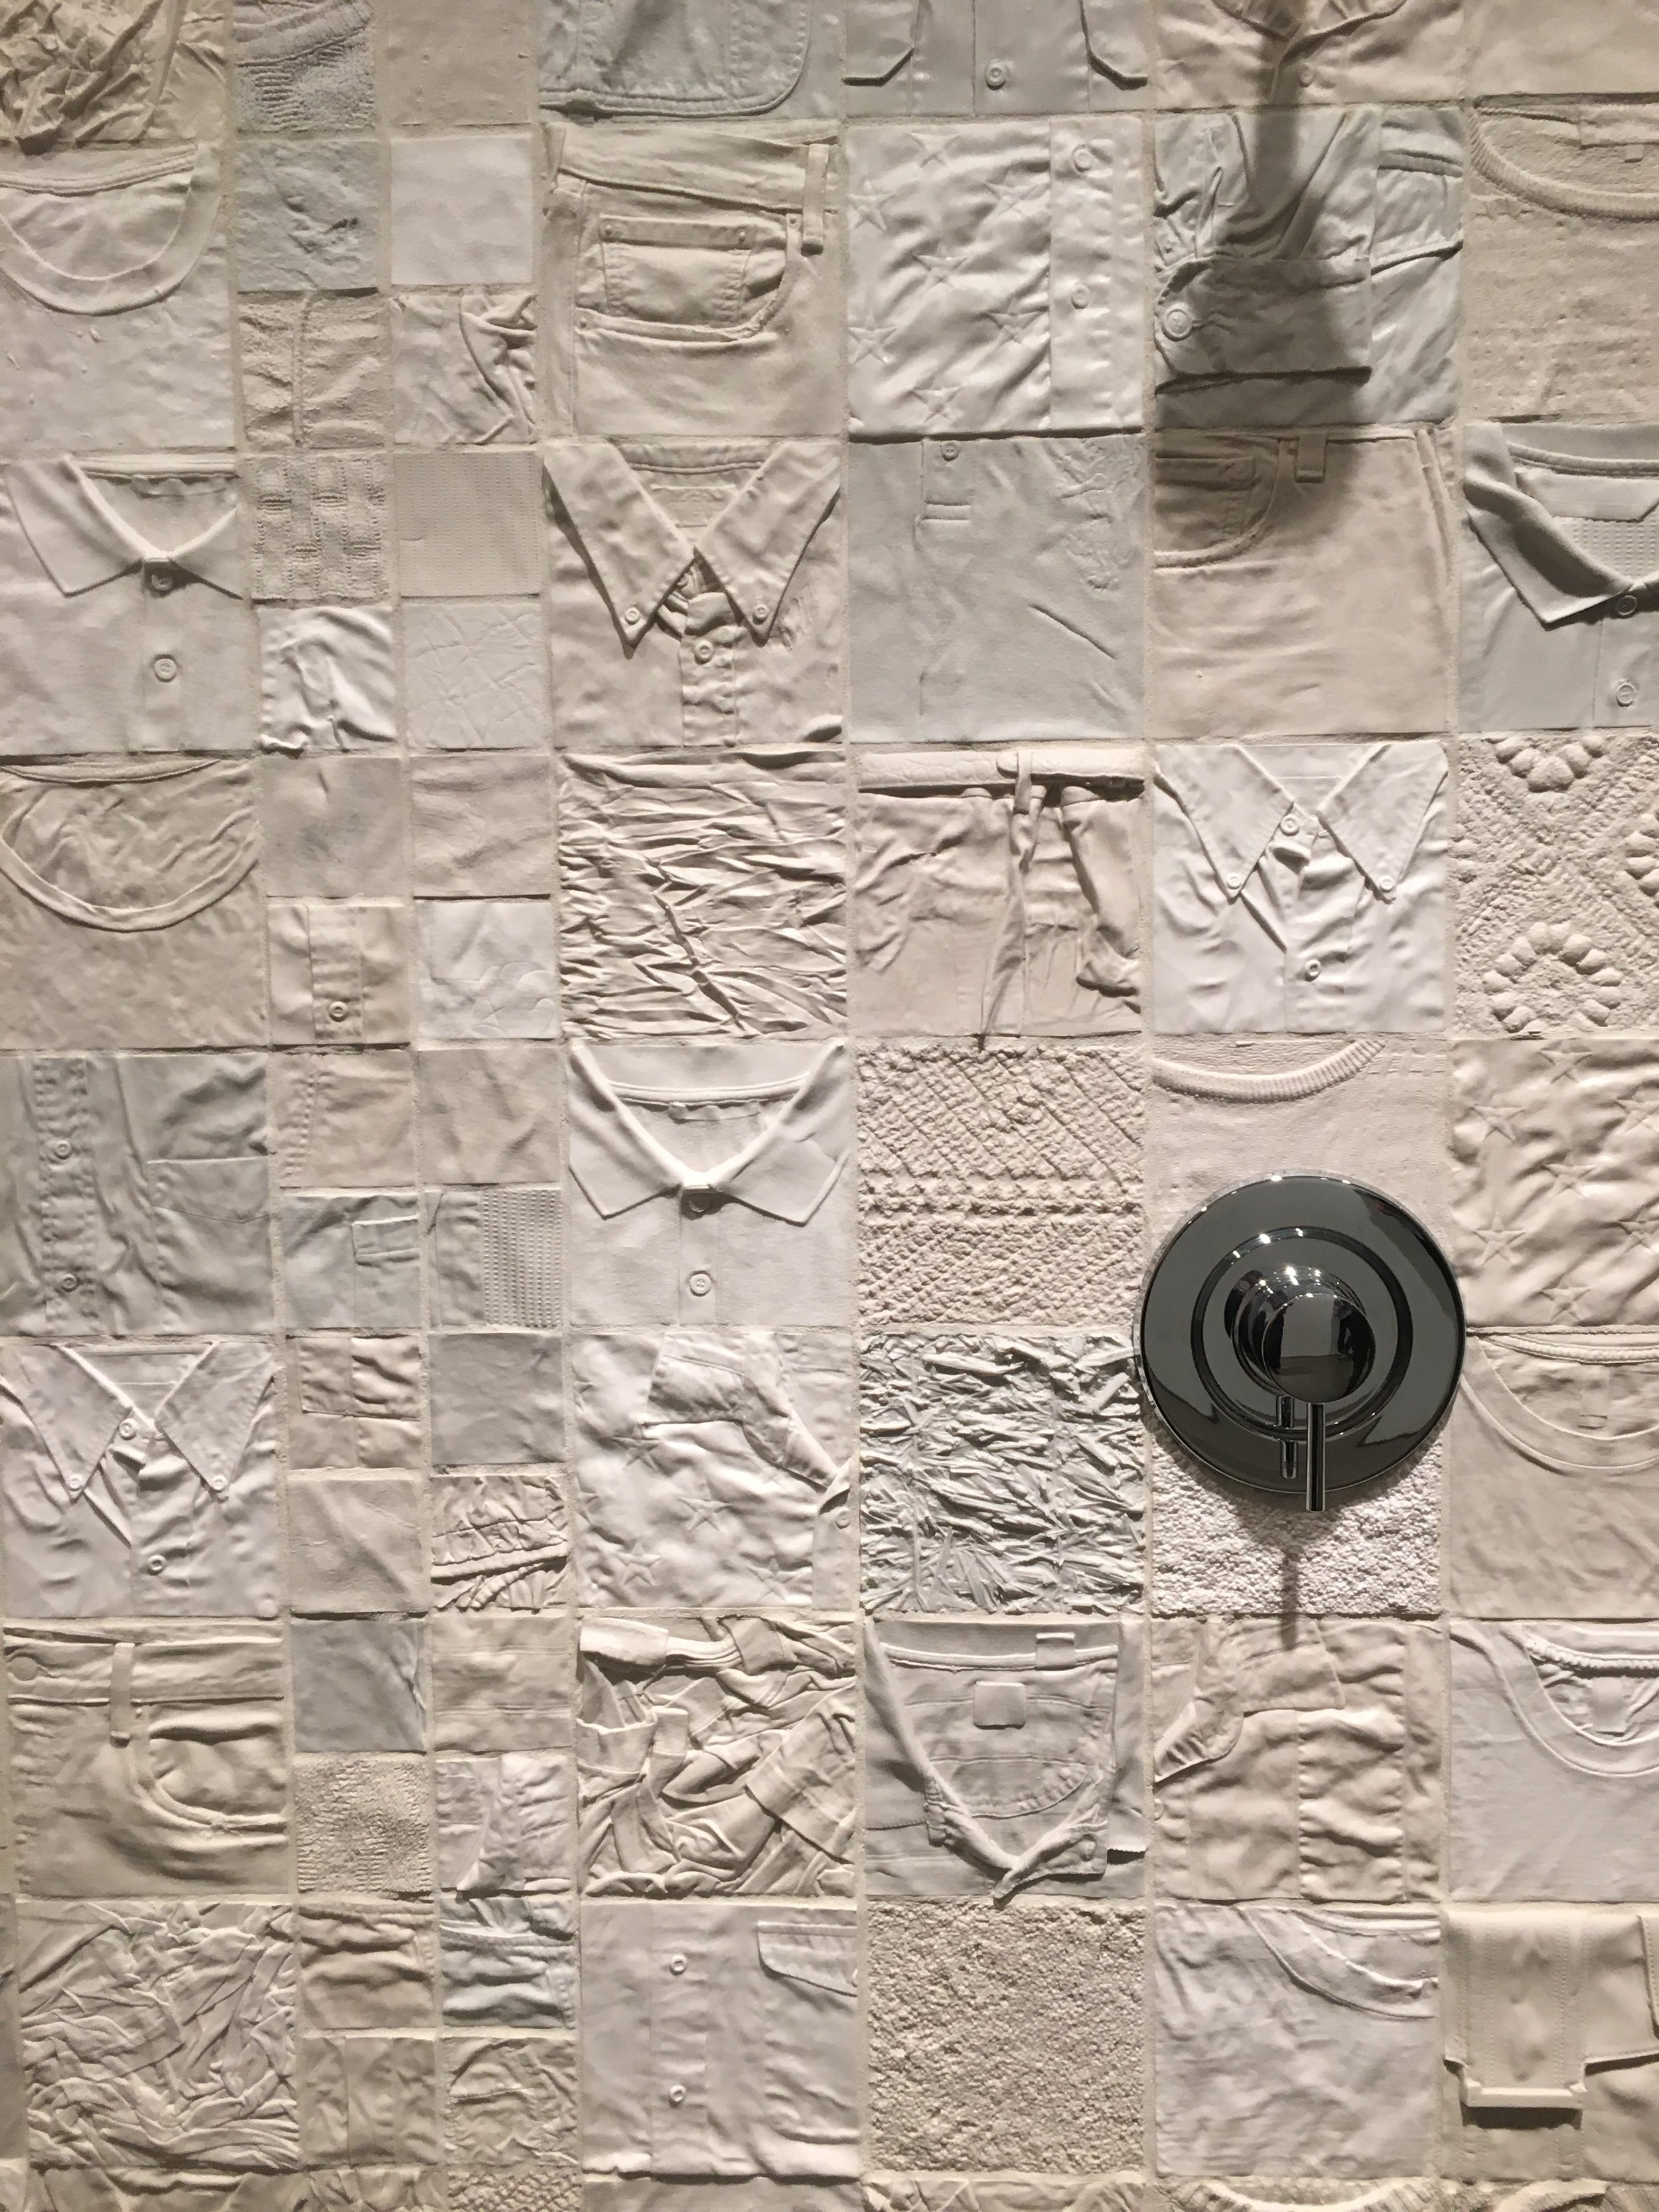 Ry Rocklen: L.A. Relics at  Honor Fraser  is cheeky fun. I especially enjoyed the hundreds of tiles made of clothing (both his own and found) that are adorned with shower heads. The show is full of absurd and wonderful familiar objects taking on new forms.